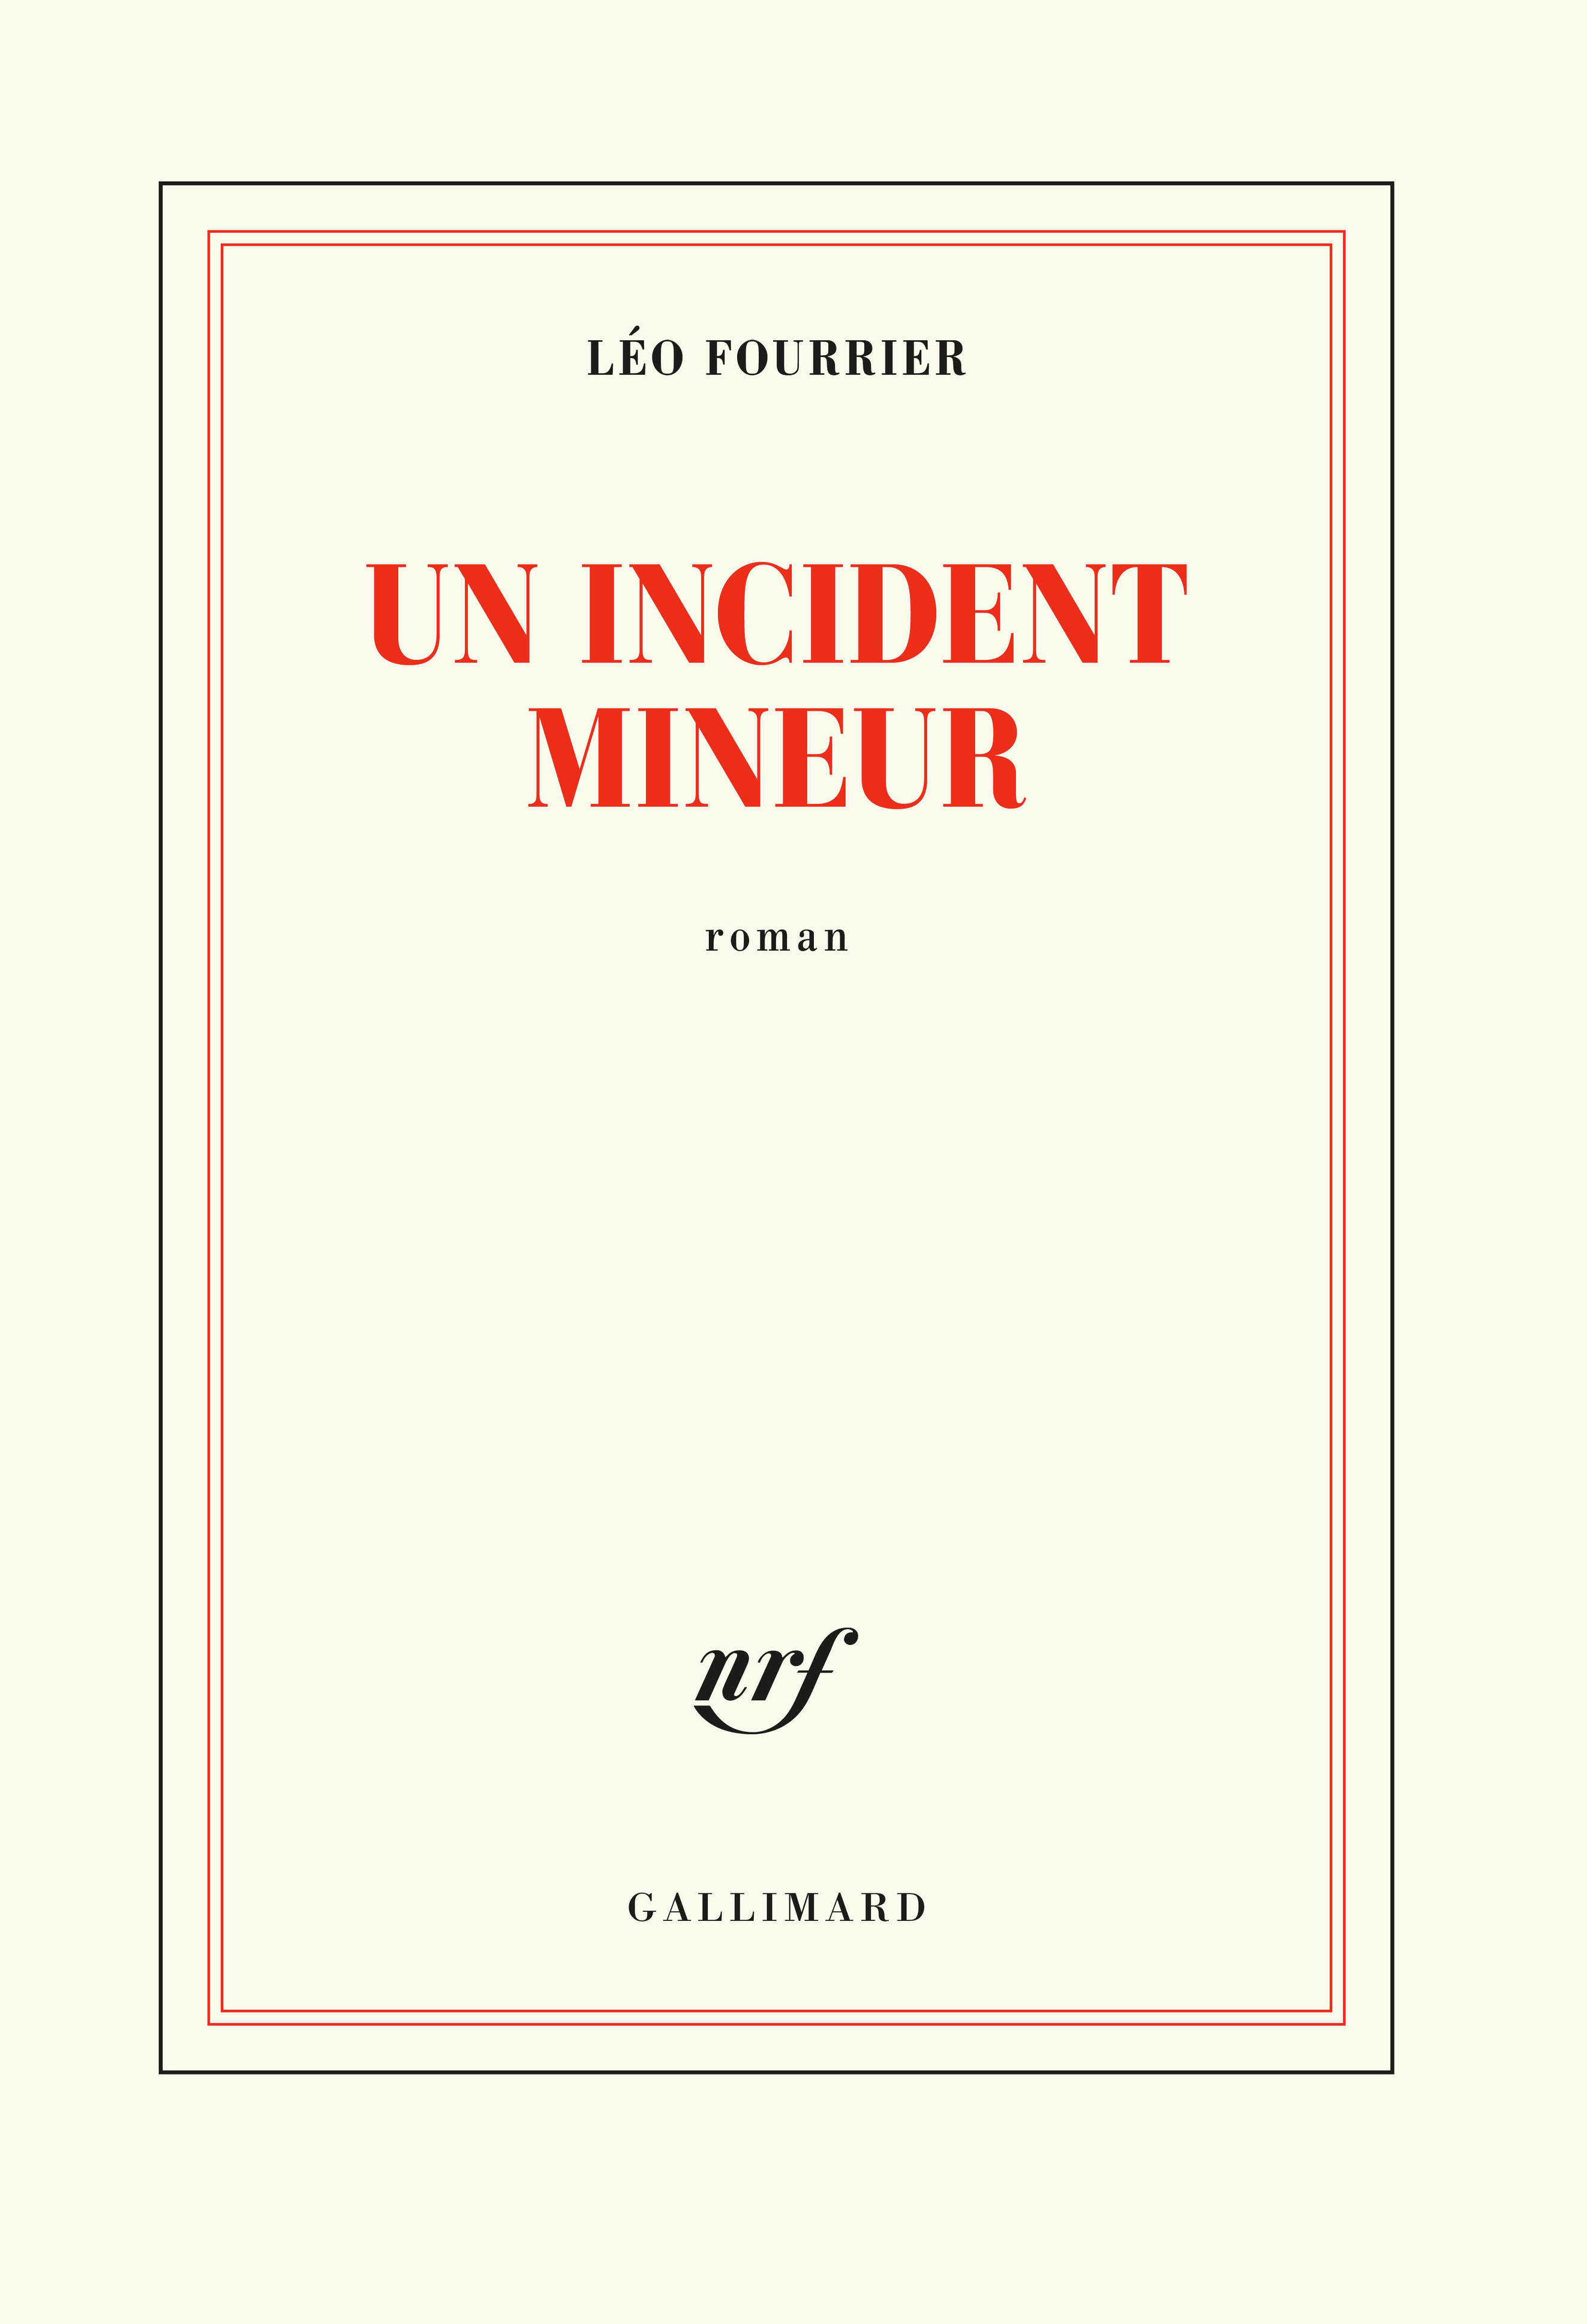 Un incident mineur